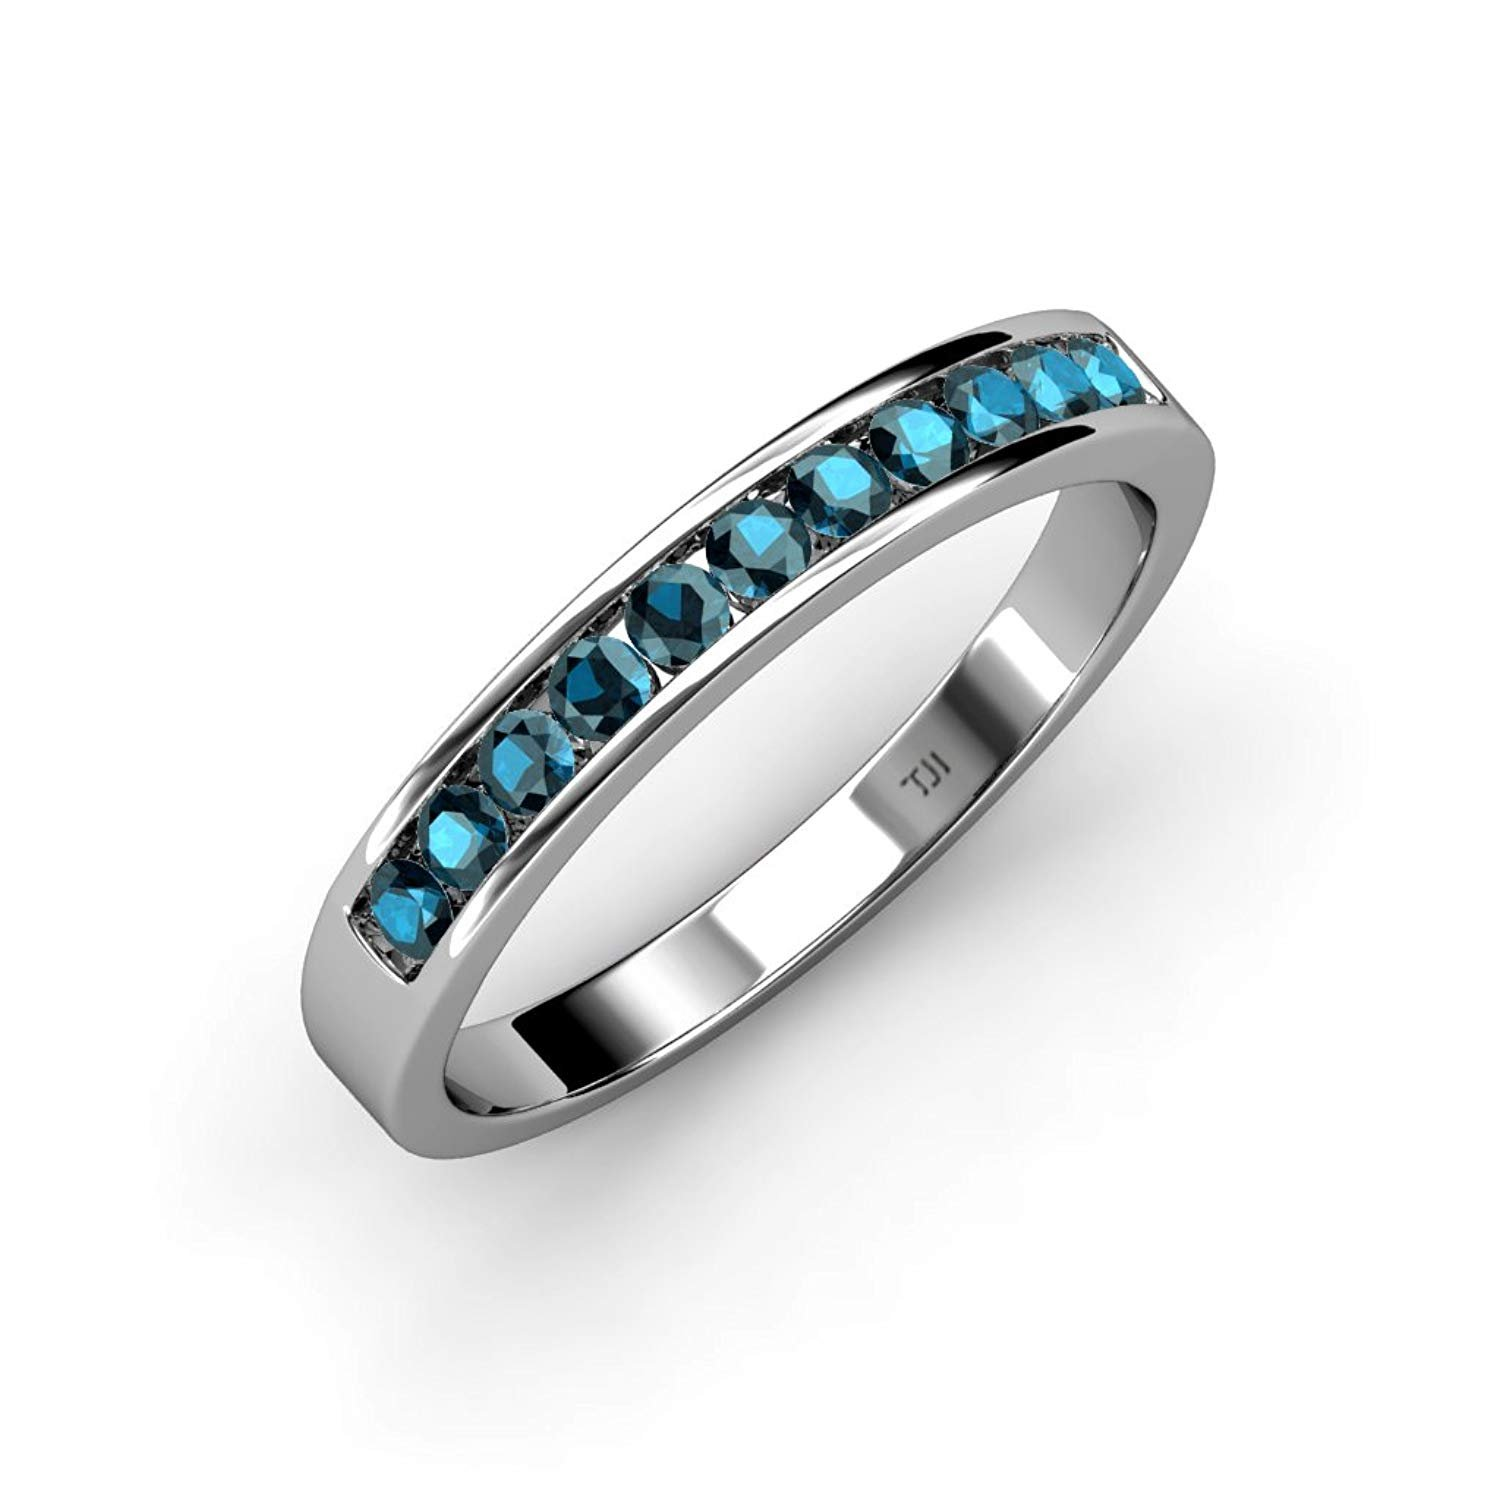 Treated Blue Diamond 11 Stone Channel Set Wedding Band 0.60 ct tw in 18K White Gold.size 5.5 by TriJewels